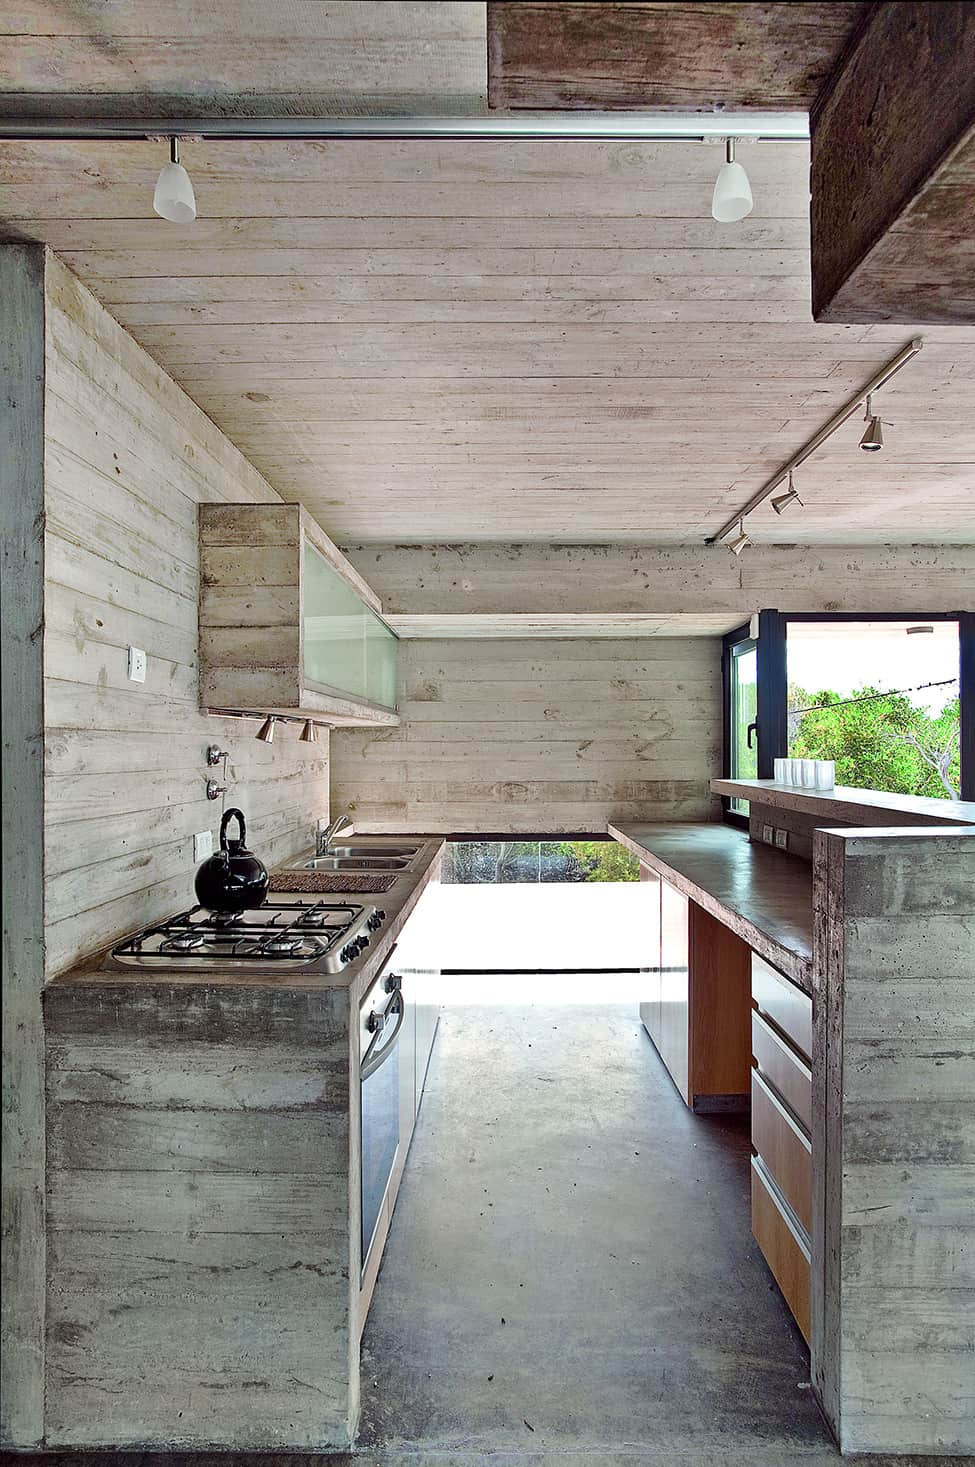 Industrial Aesthetic Values in a Beach Home by BAK Architects (22)